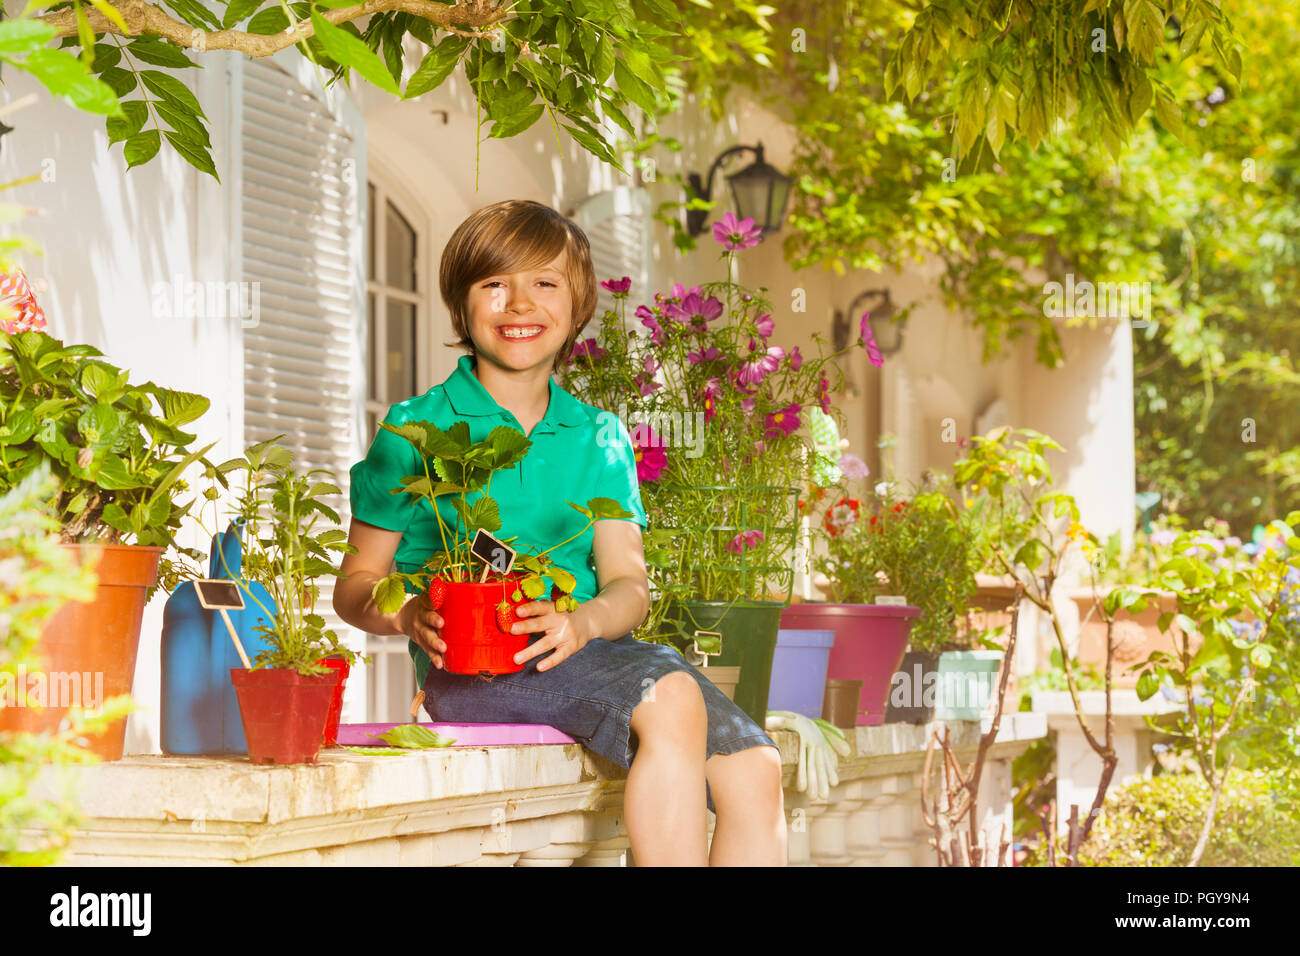 Portrait of happy preteen boy sitting on balustrade of balcony garden and holding pot with strawberries plant - Stock Image